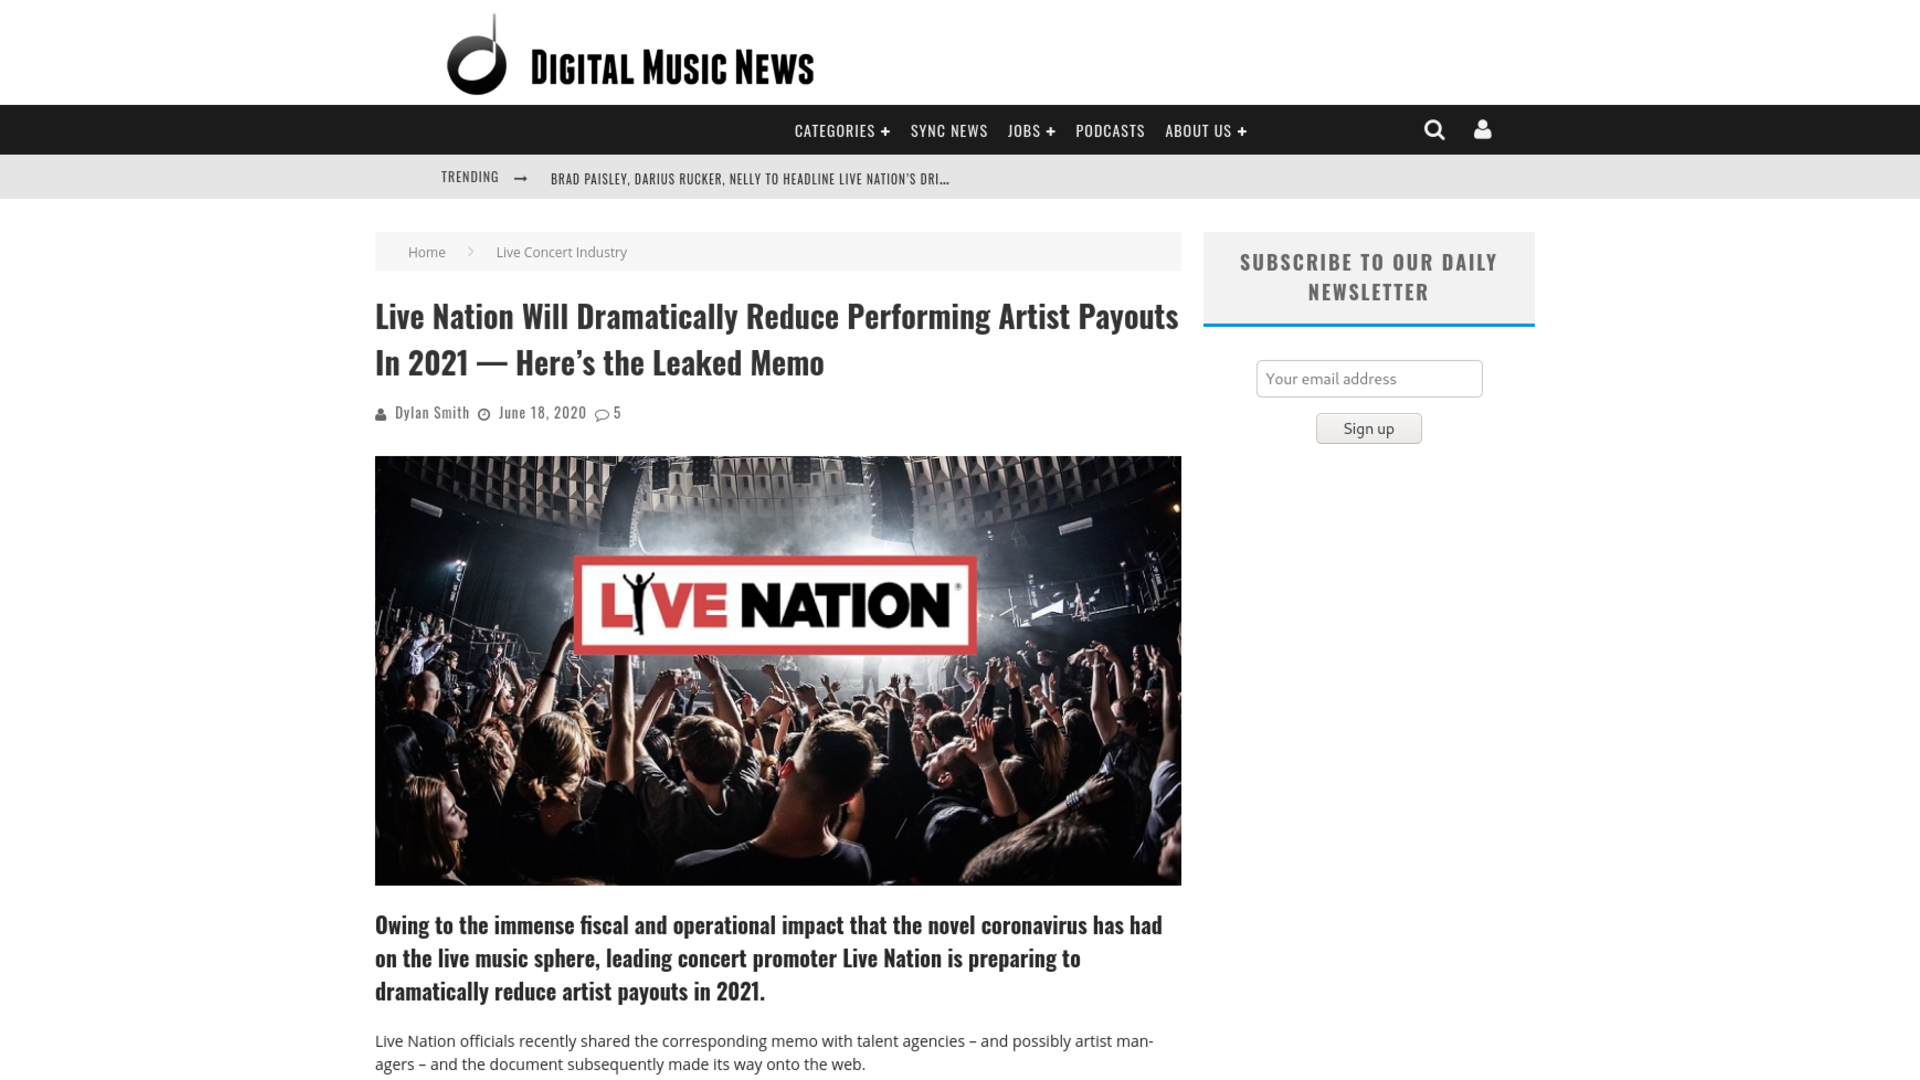 Fairness Rocks News Live Nation Will Dramatically Reduce Performing Artist Payouts In 2021 — Here's the Leaked Memo